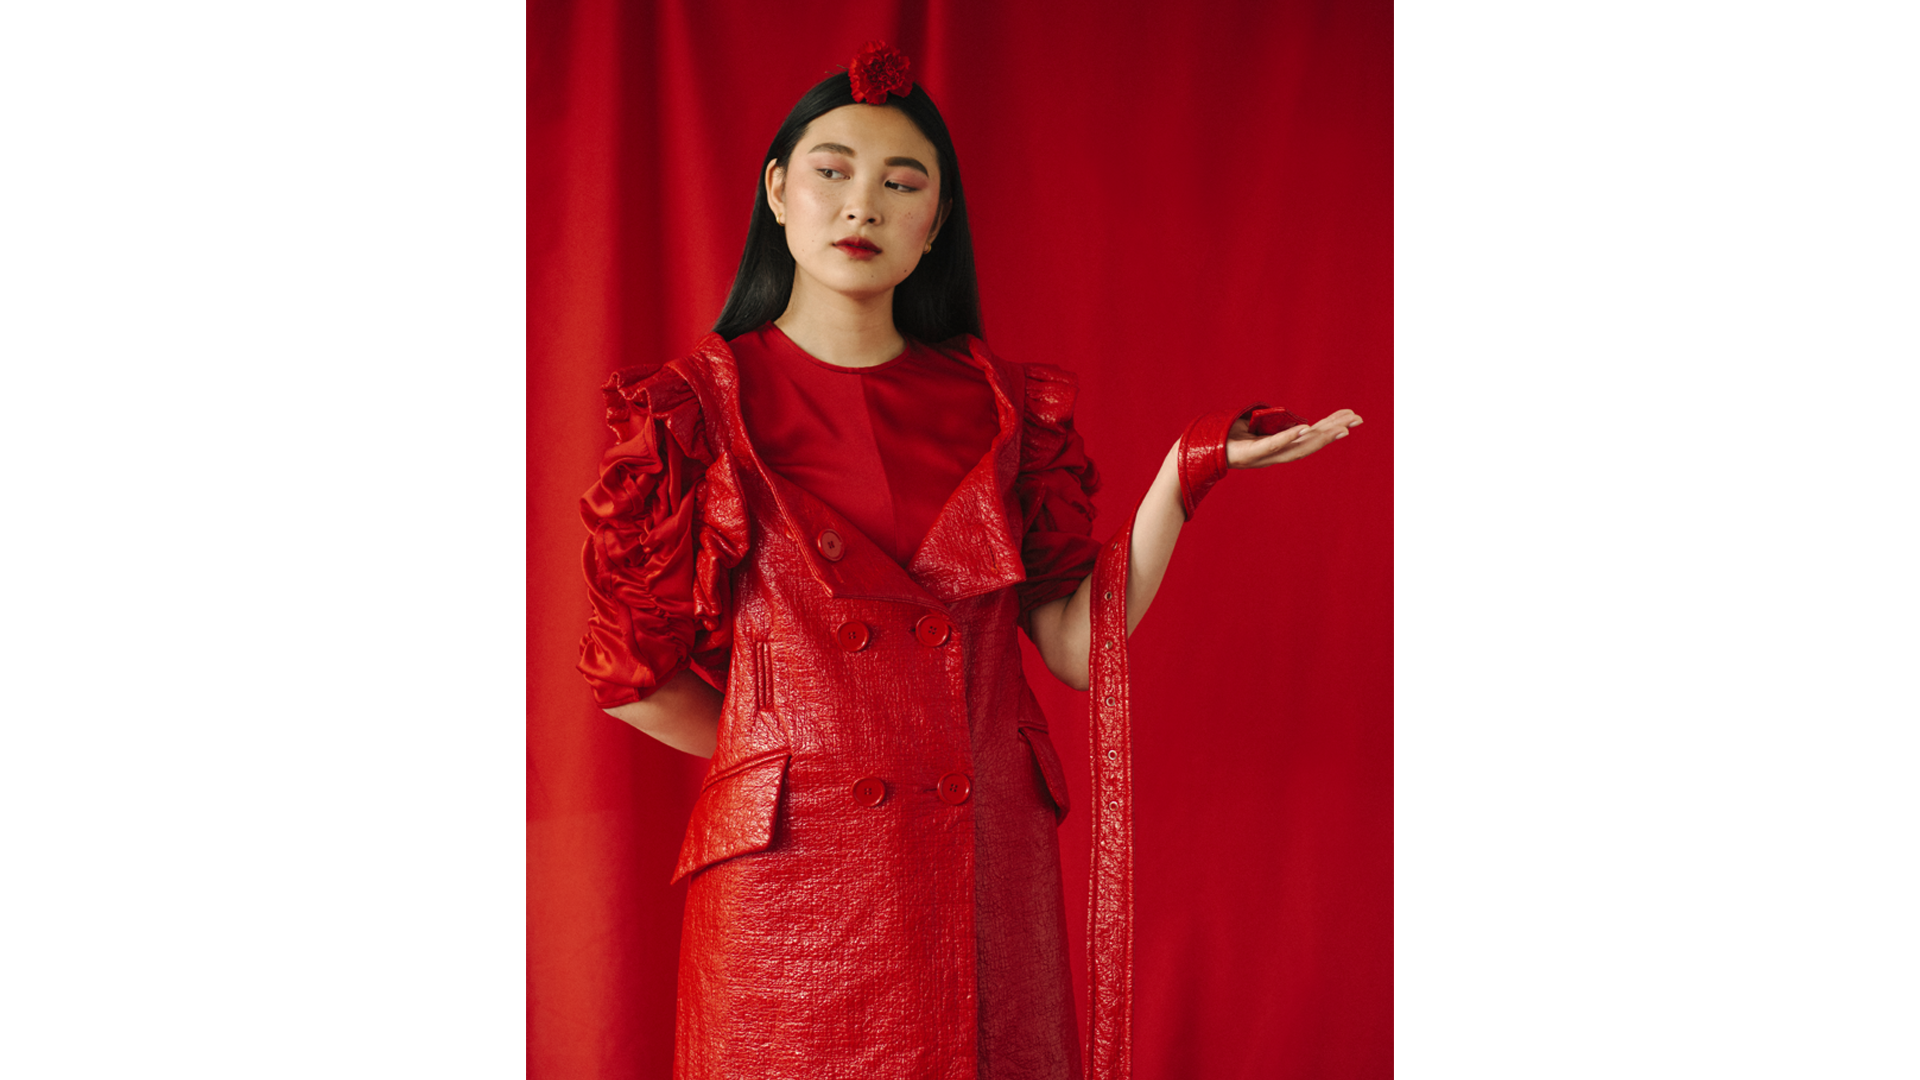 A History Of Colour In Fashion Photo Series